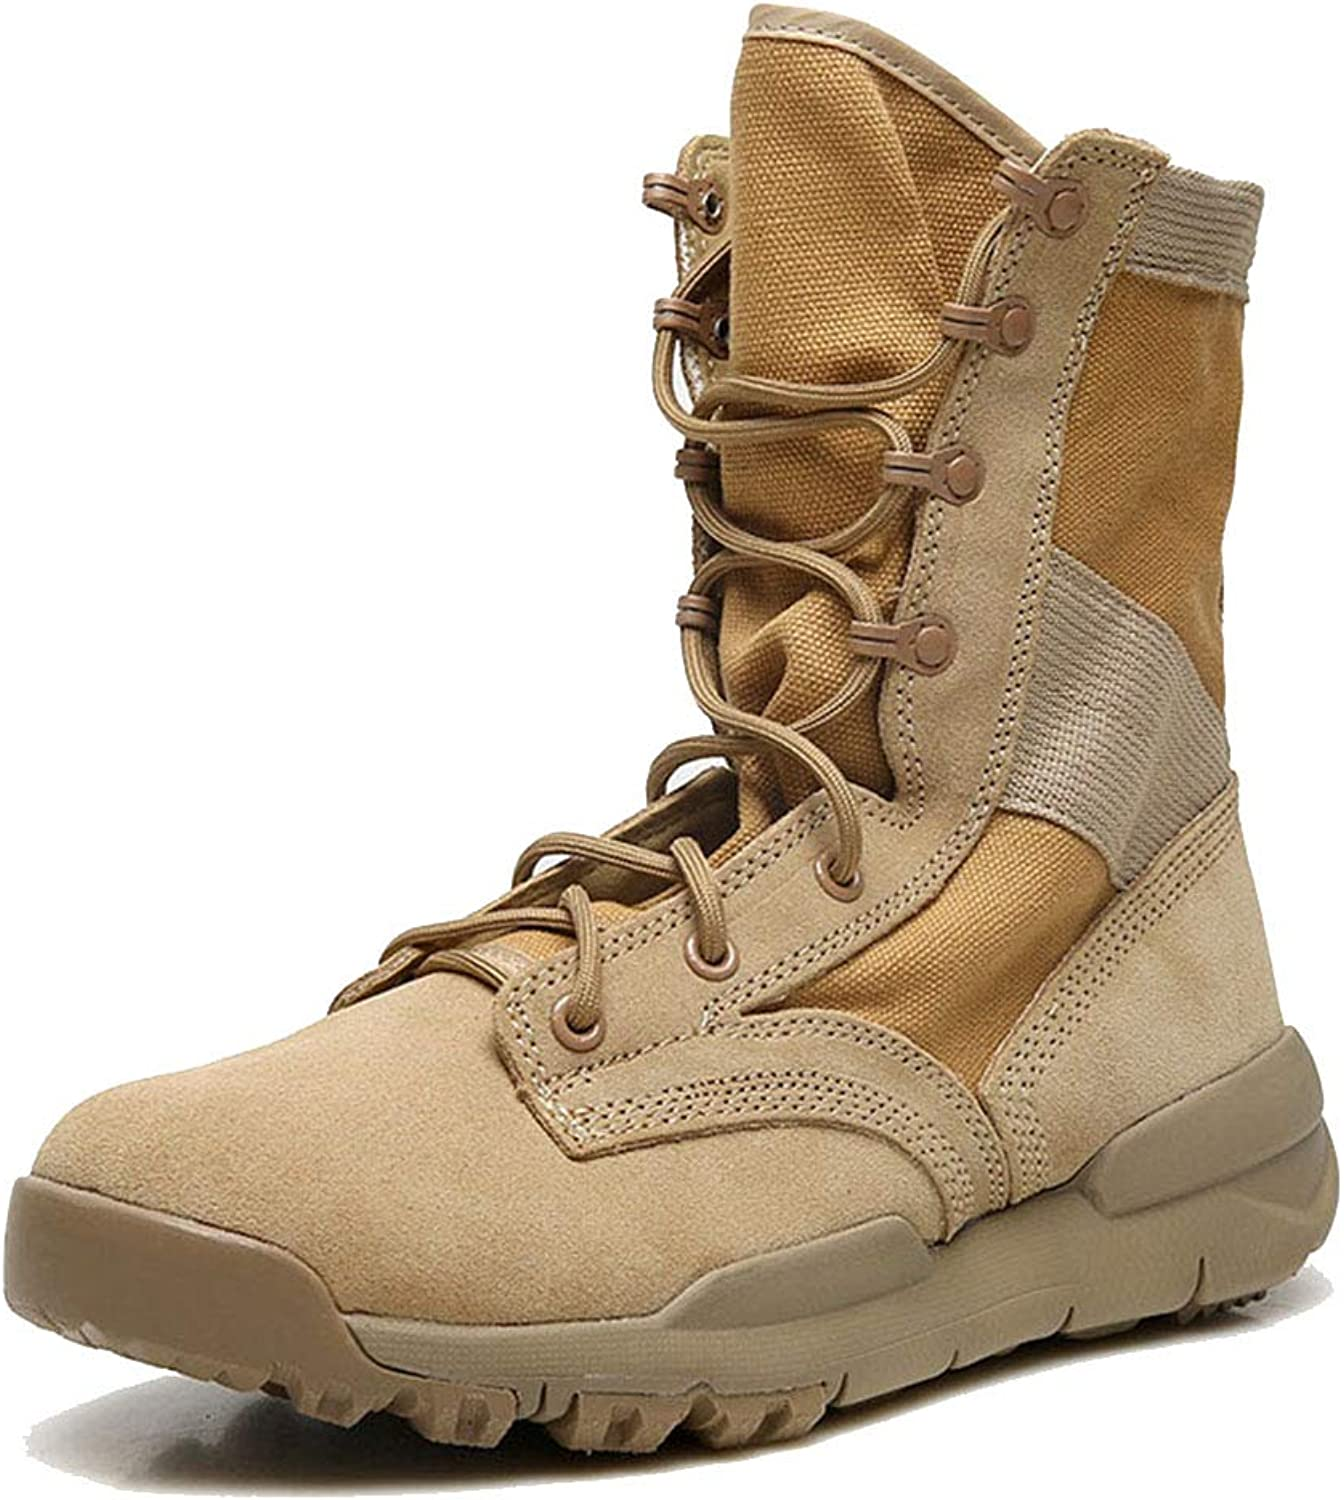 SDKHIN Military Desert Boots combat patrol breathable couples military boots sand prevention outdoor hiking desert boots tactical boots